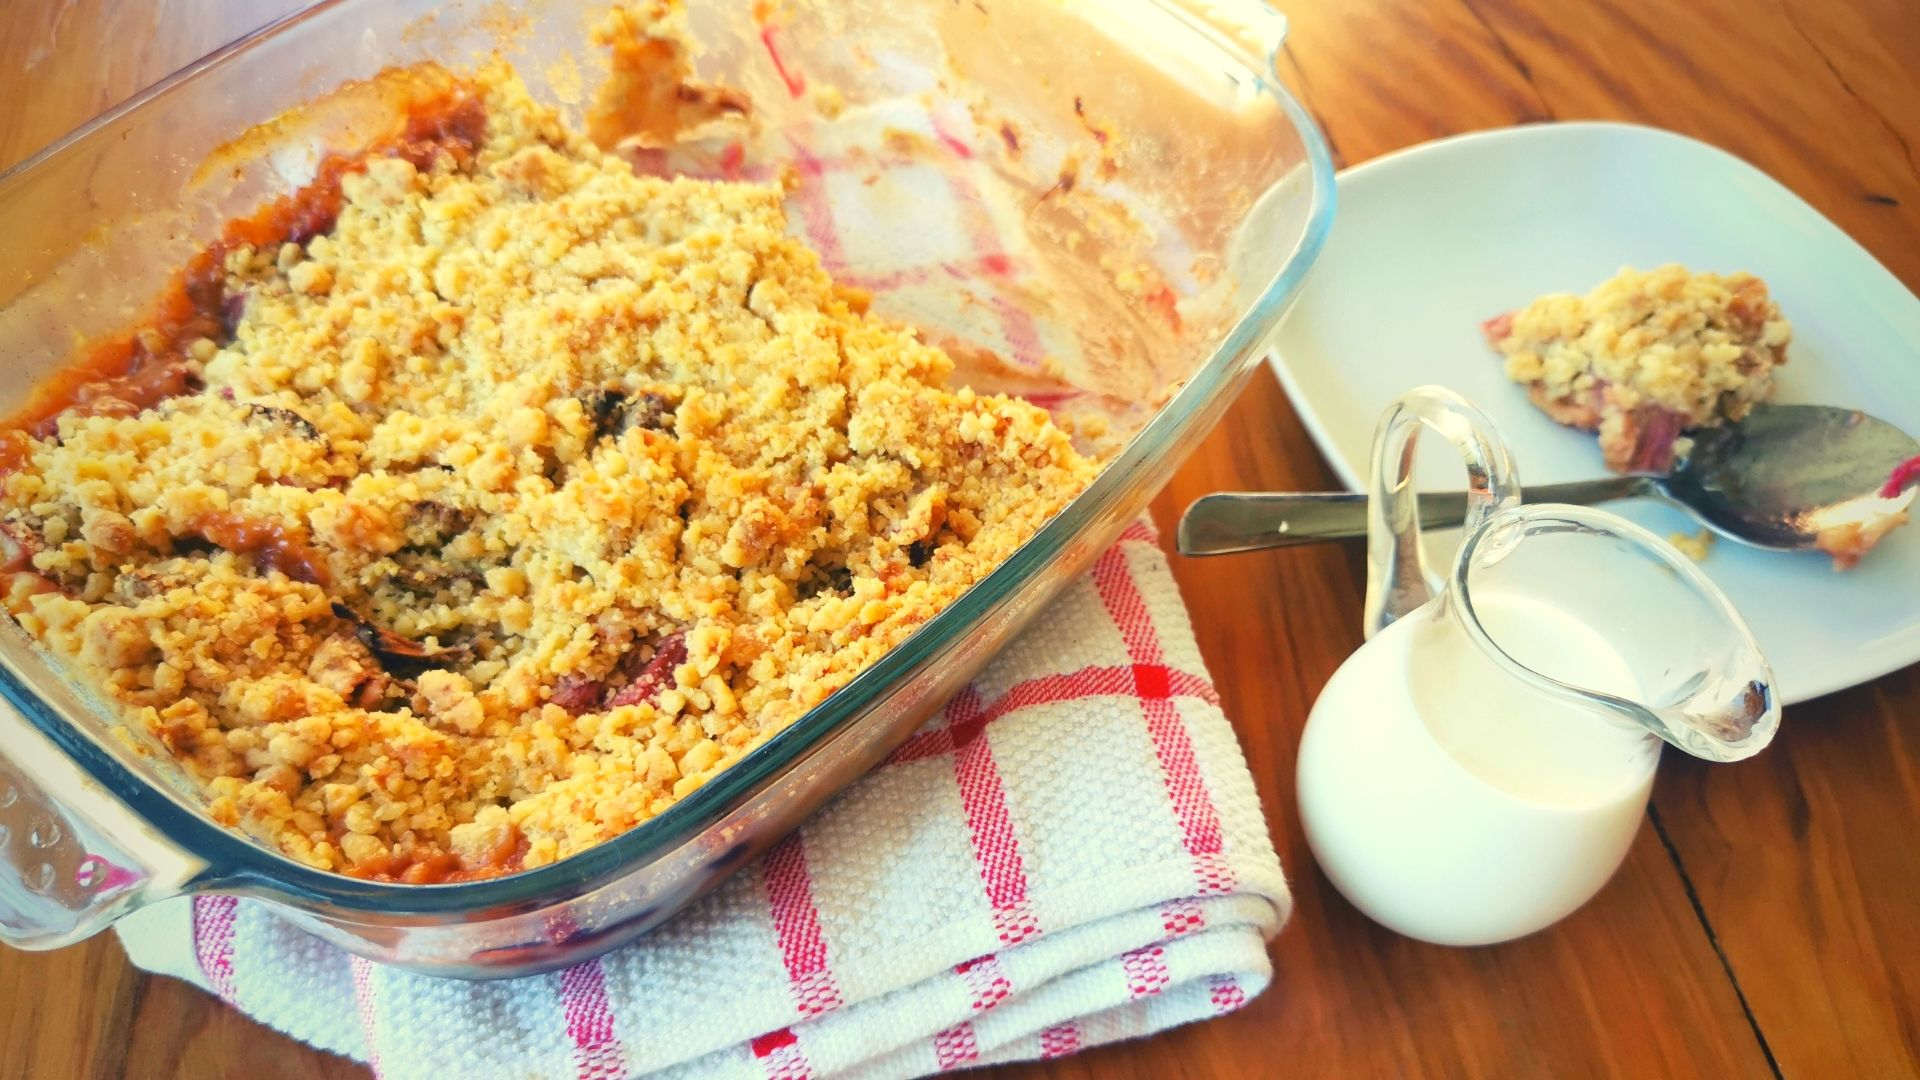 Rhubarb Crumble a Quick and Easy Spring Pudding